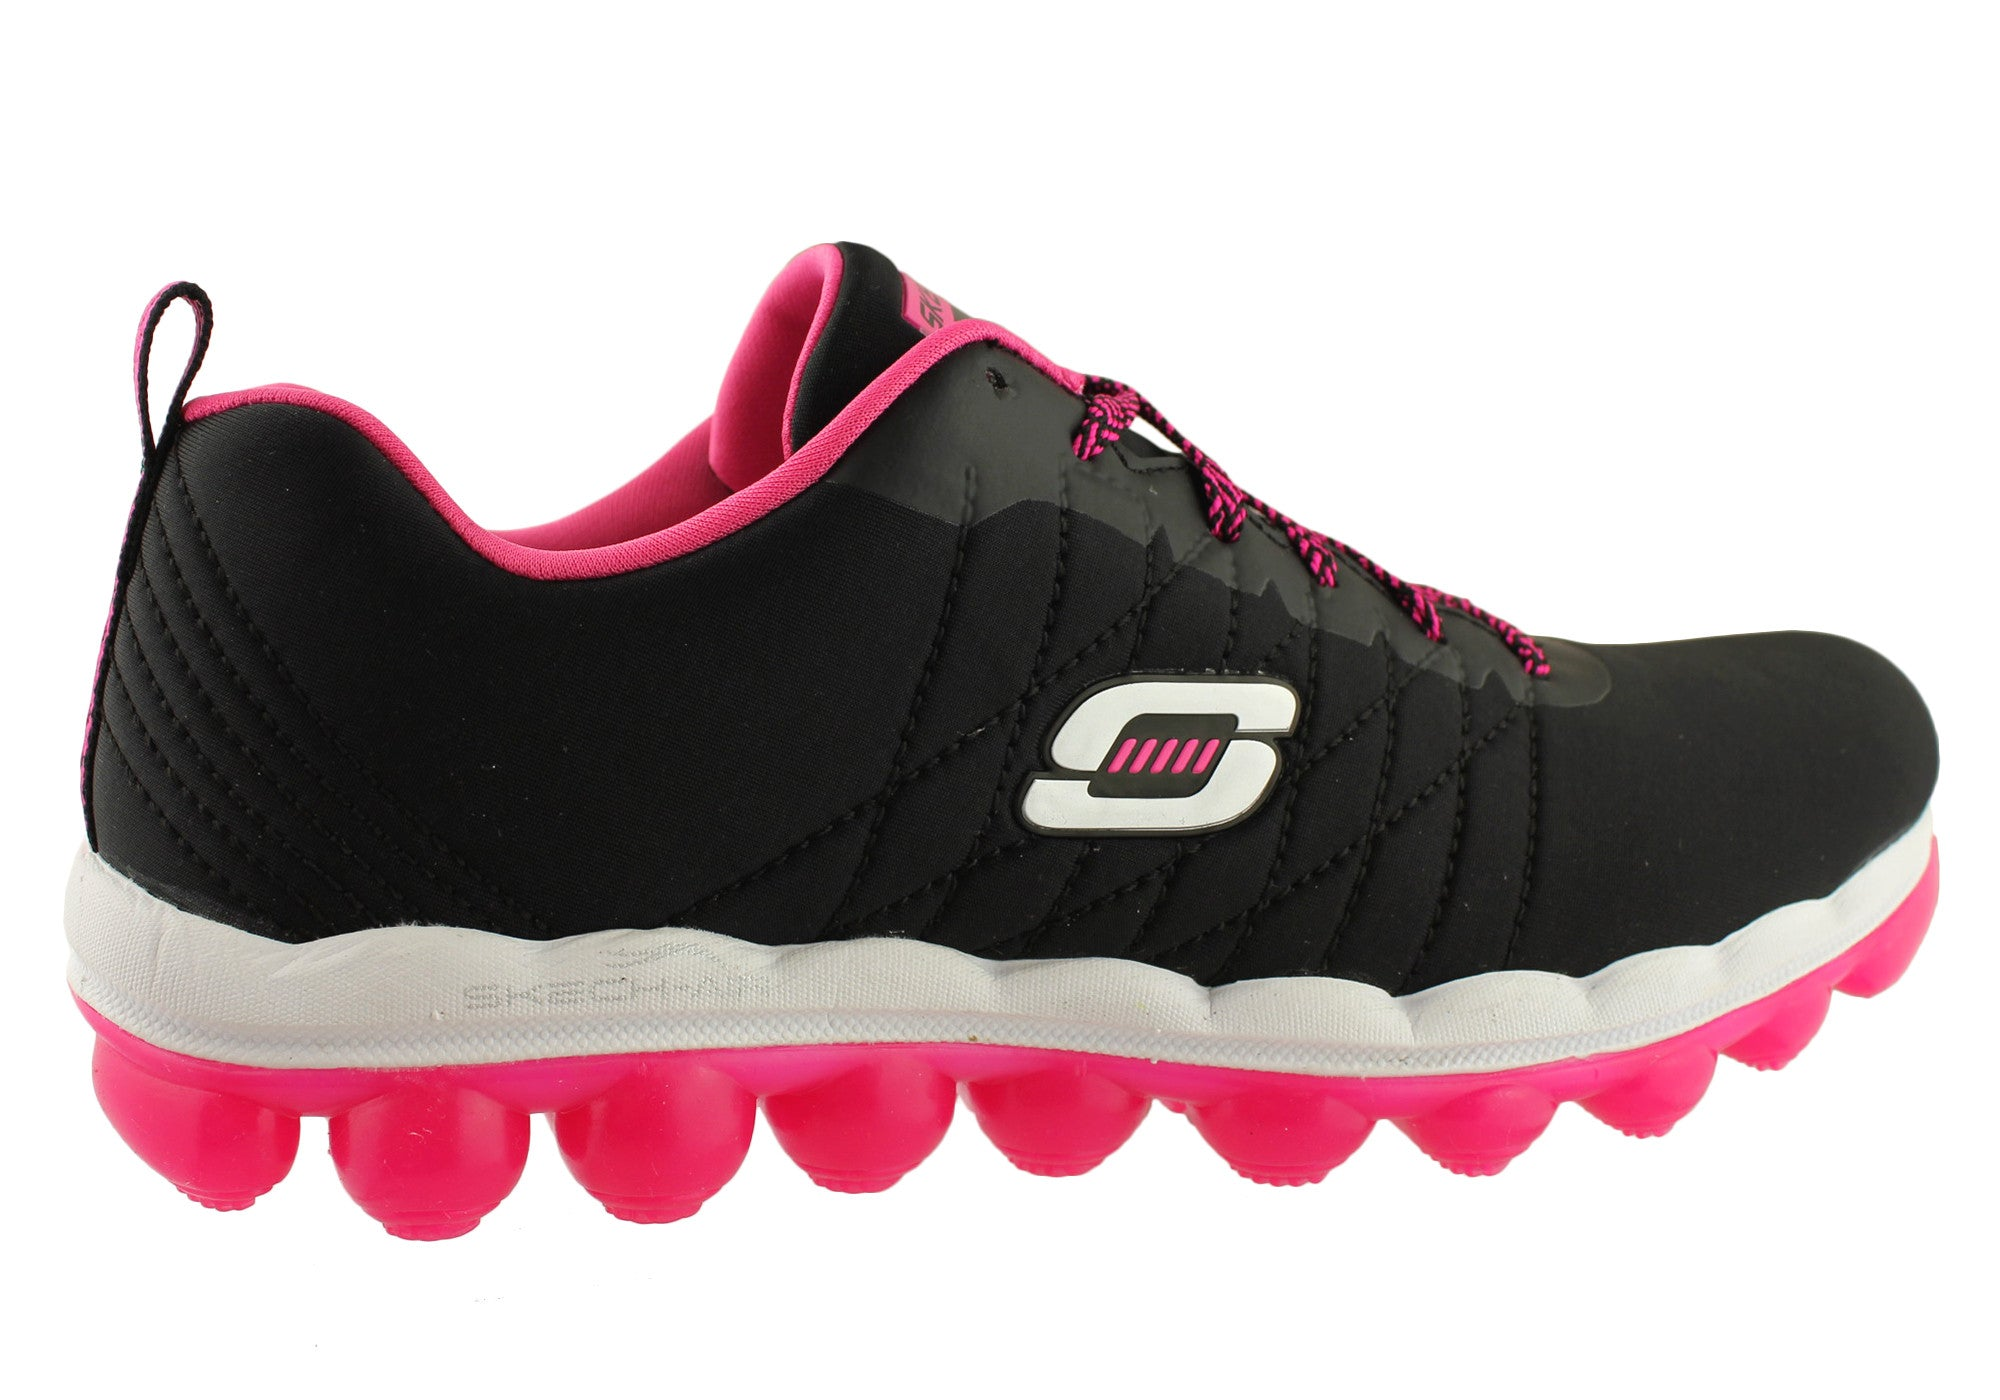 Skechers Skech Air Sunset Groove Womens Lace Up Shoes